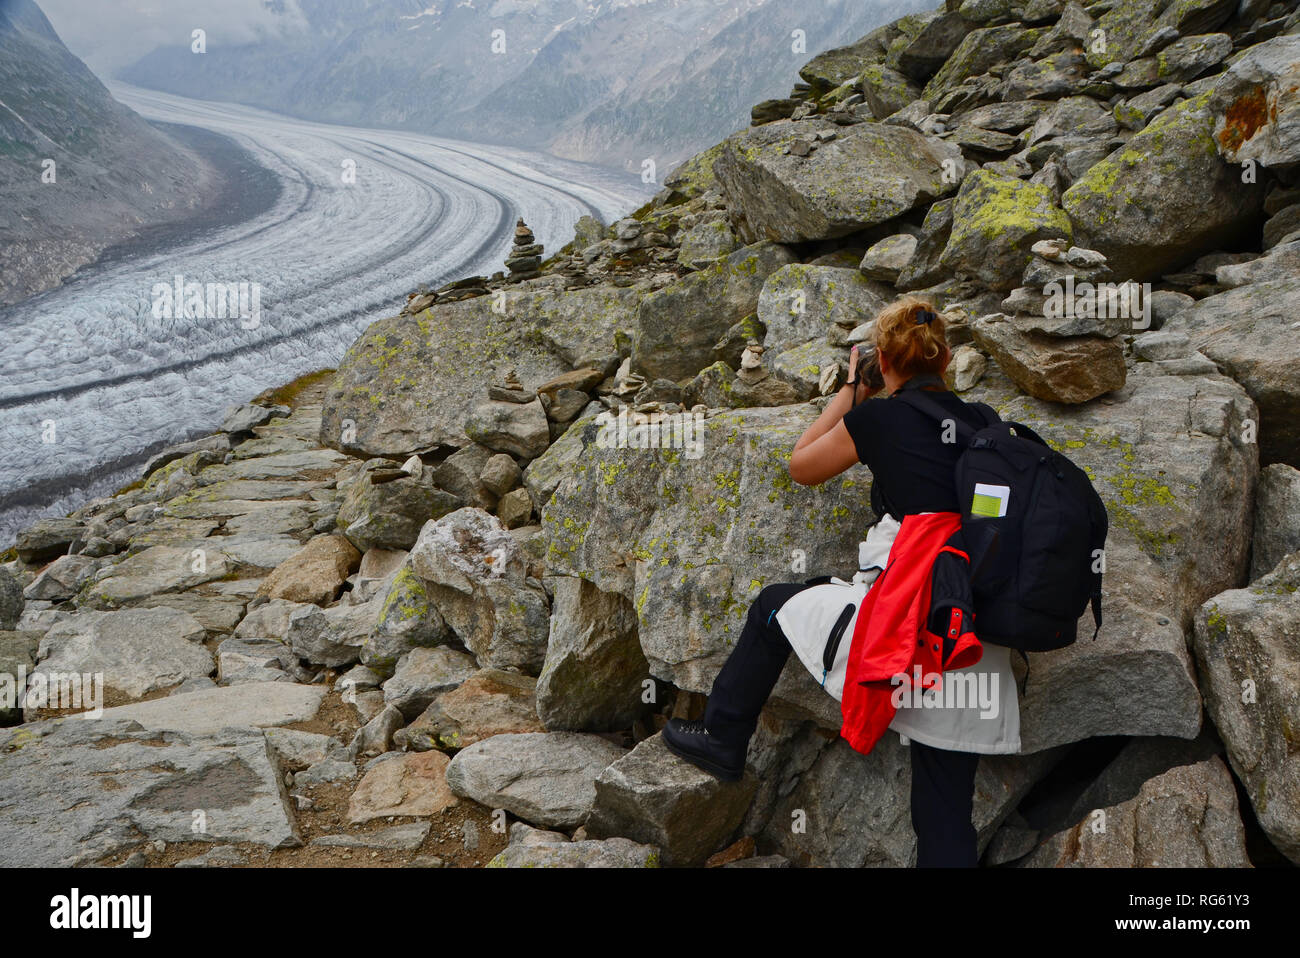 Woman taking a photo of the Great Aletsch Glacier, Valais, Switzerland Stock Photo